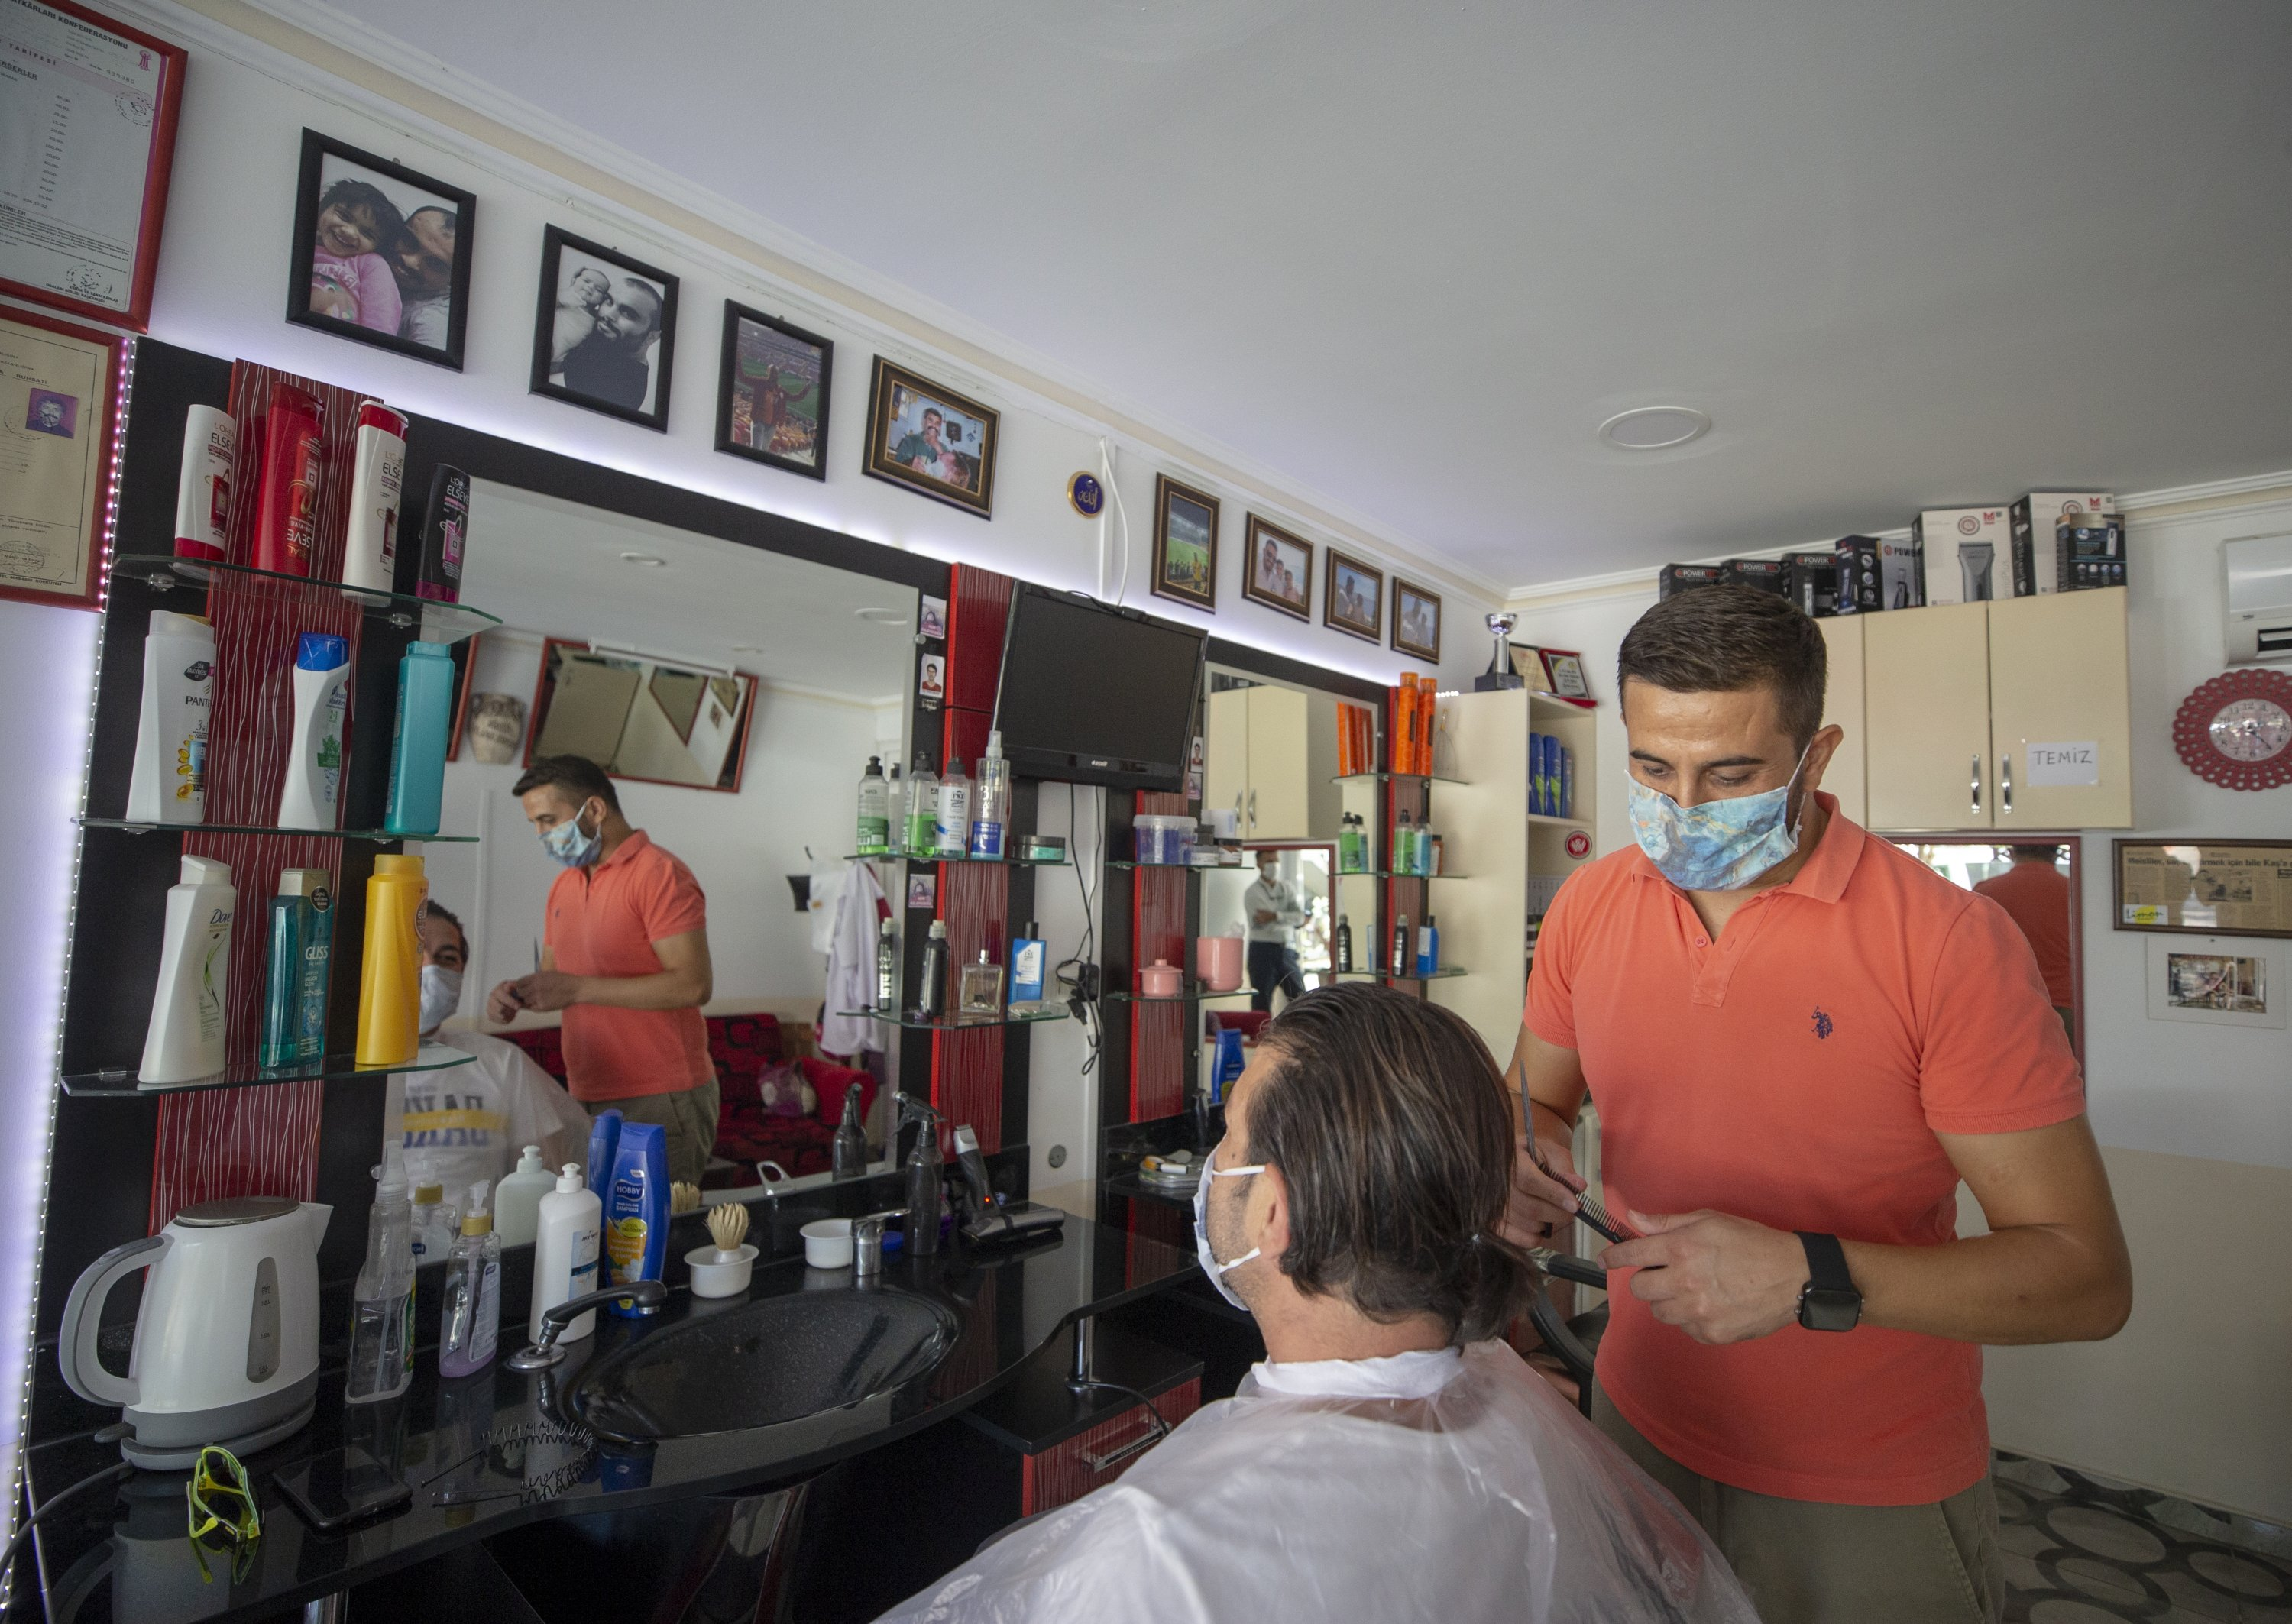 Bayram Aydoğdu, who has been keeping in touch with his friends in Kastellorizo through videoconferences, works at his barbershop in Kaş, Antalya province, southern Turkey, Sept. 18, 2020. (AA Photo)